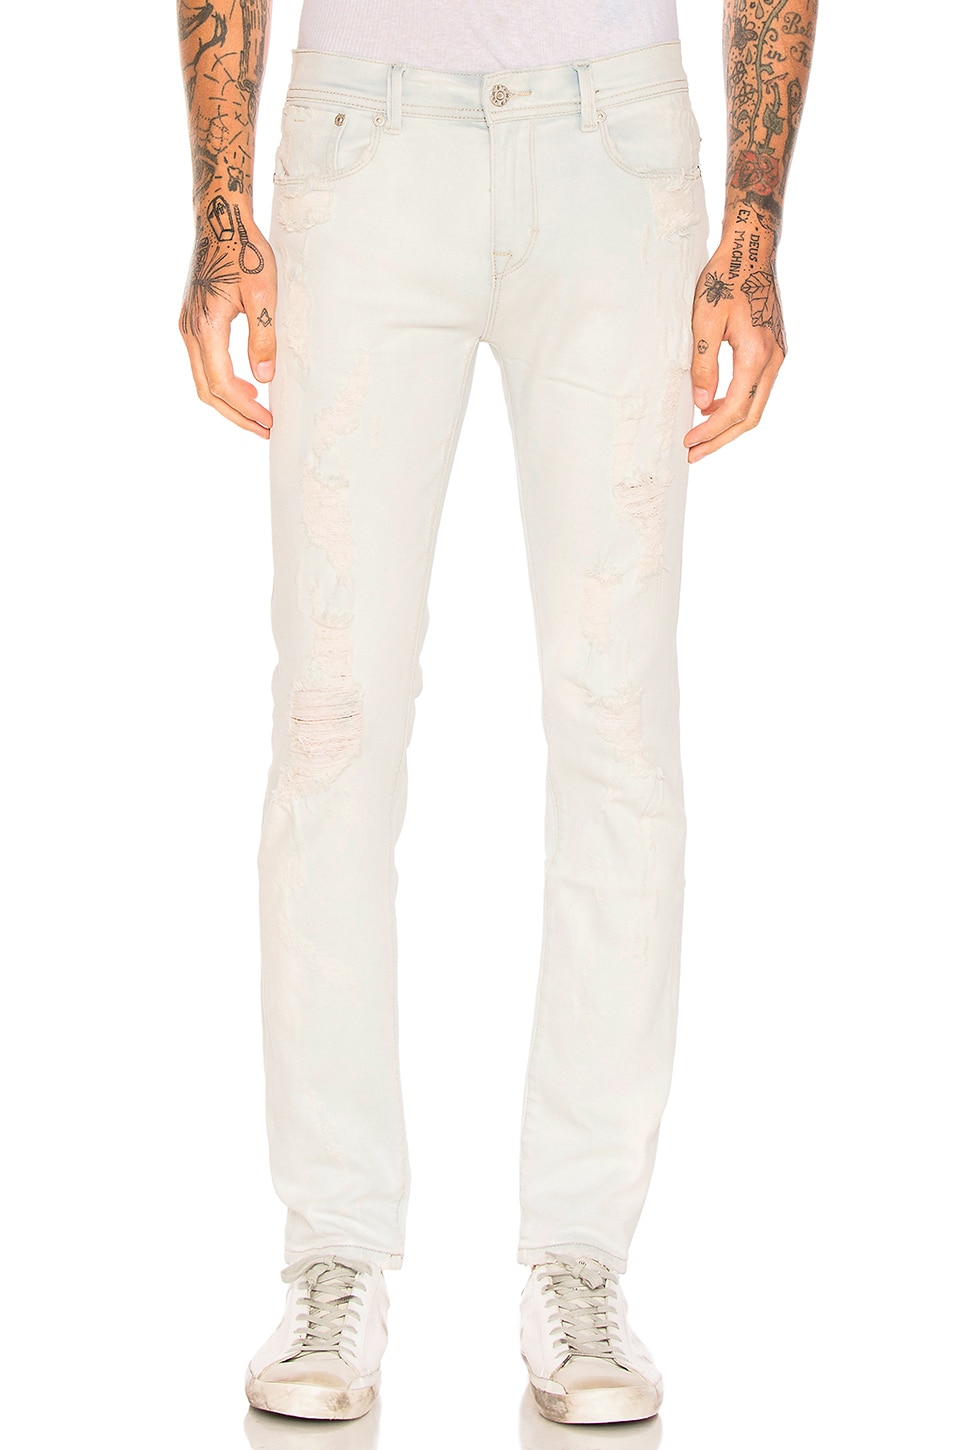 Distressed Skinny Jeans by Stampd